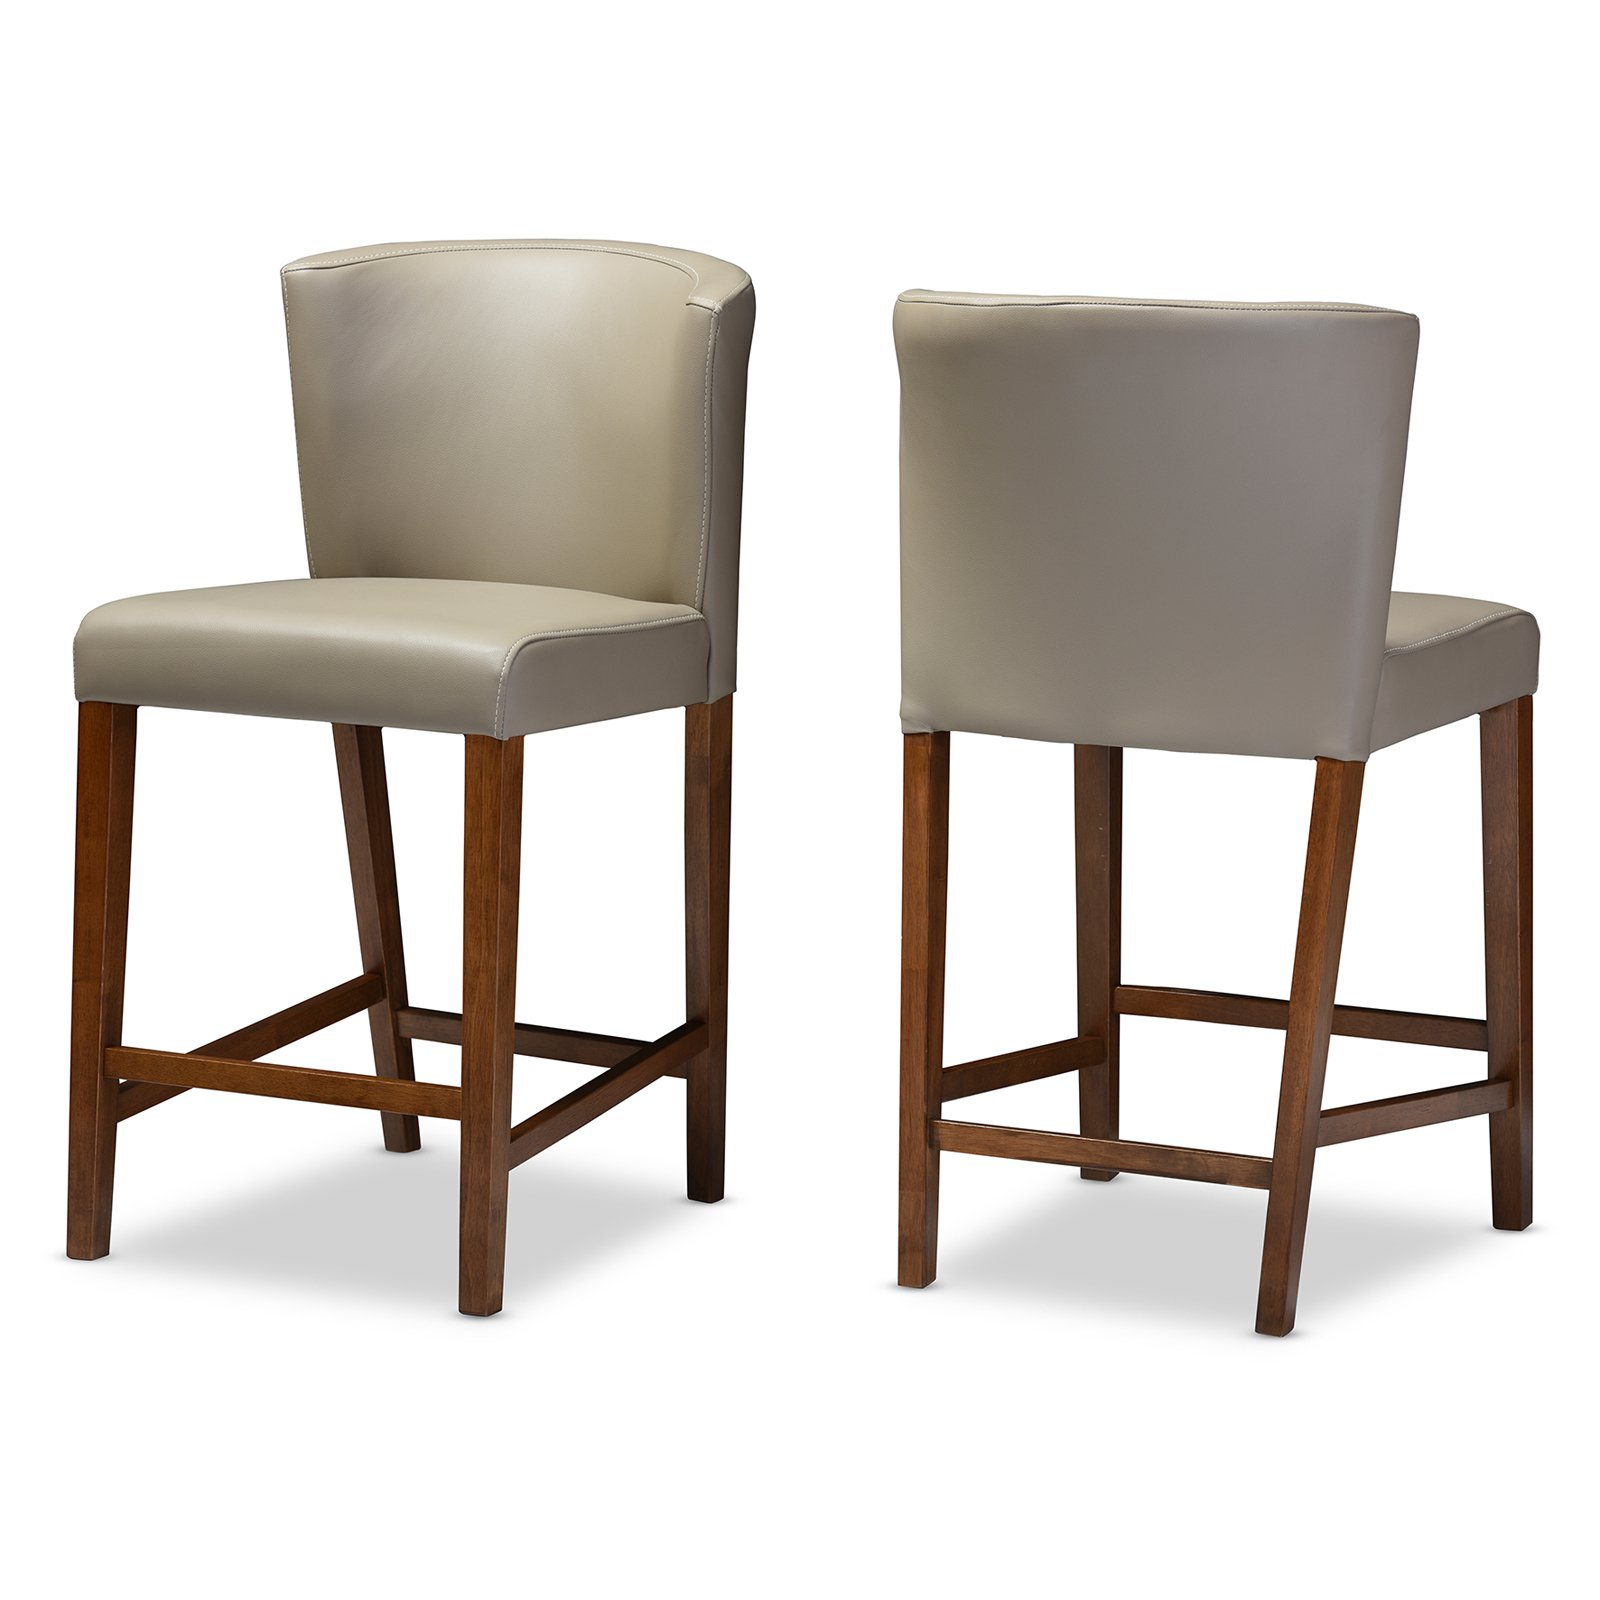 Baxton Studio Olivia Mid-Century Modern Scandinavian-Style Dark Walnut Wood Gray Faux Leather Pub Stools, Set of 2